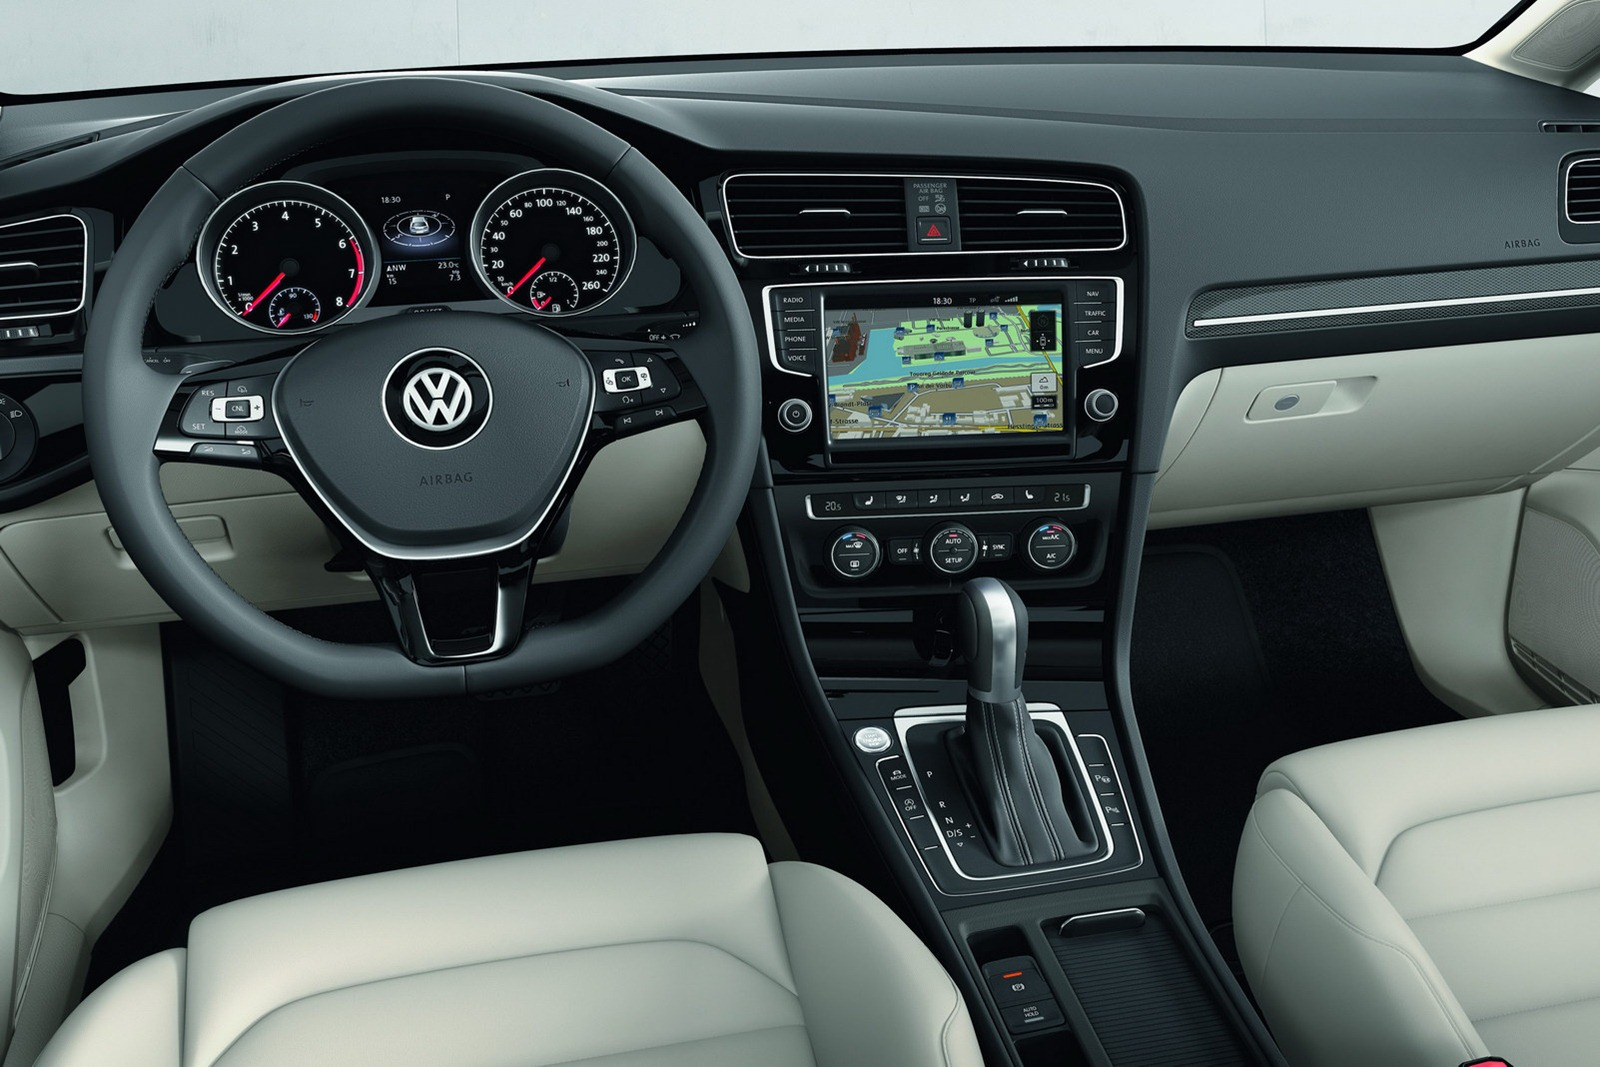 2013 vw mk7 golf interior 5 for Interior volkswagen golf